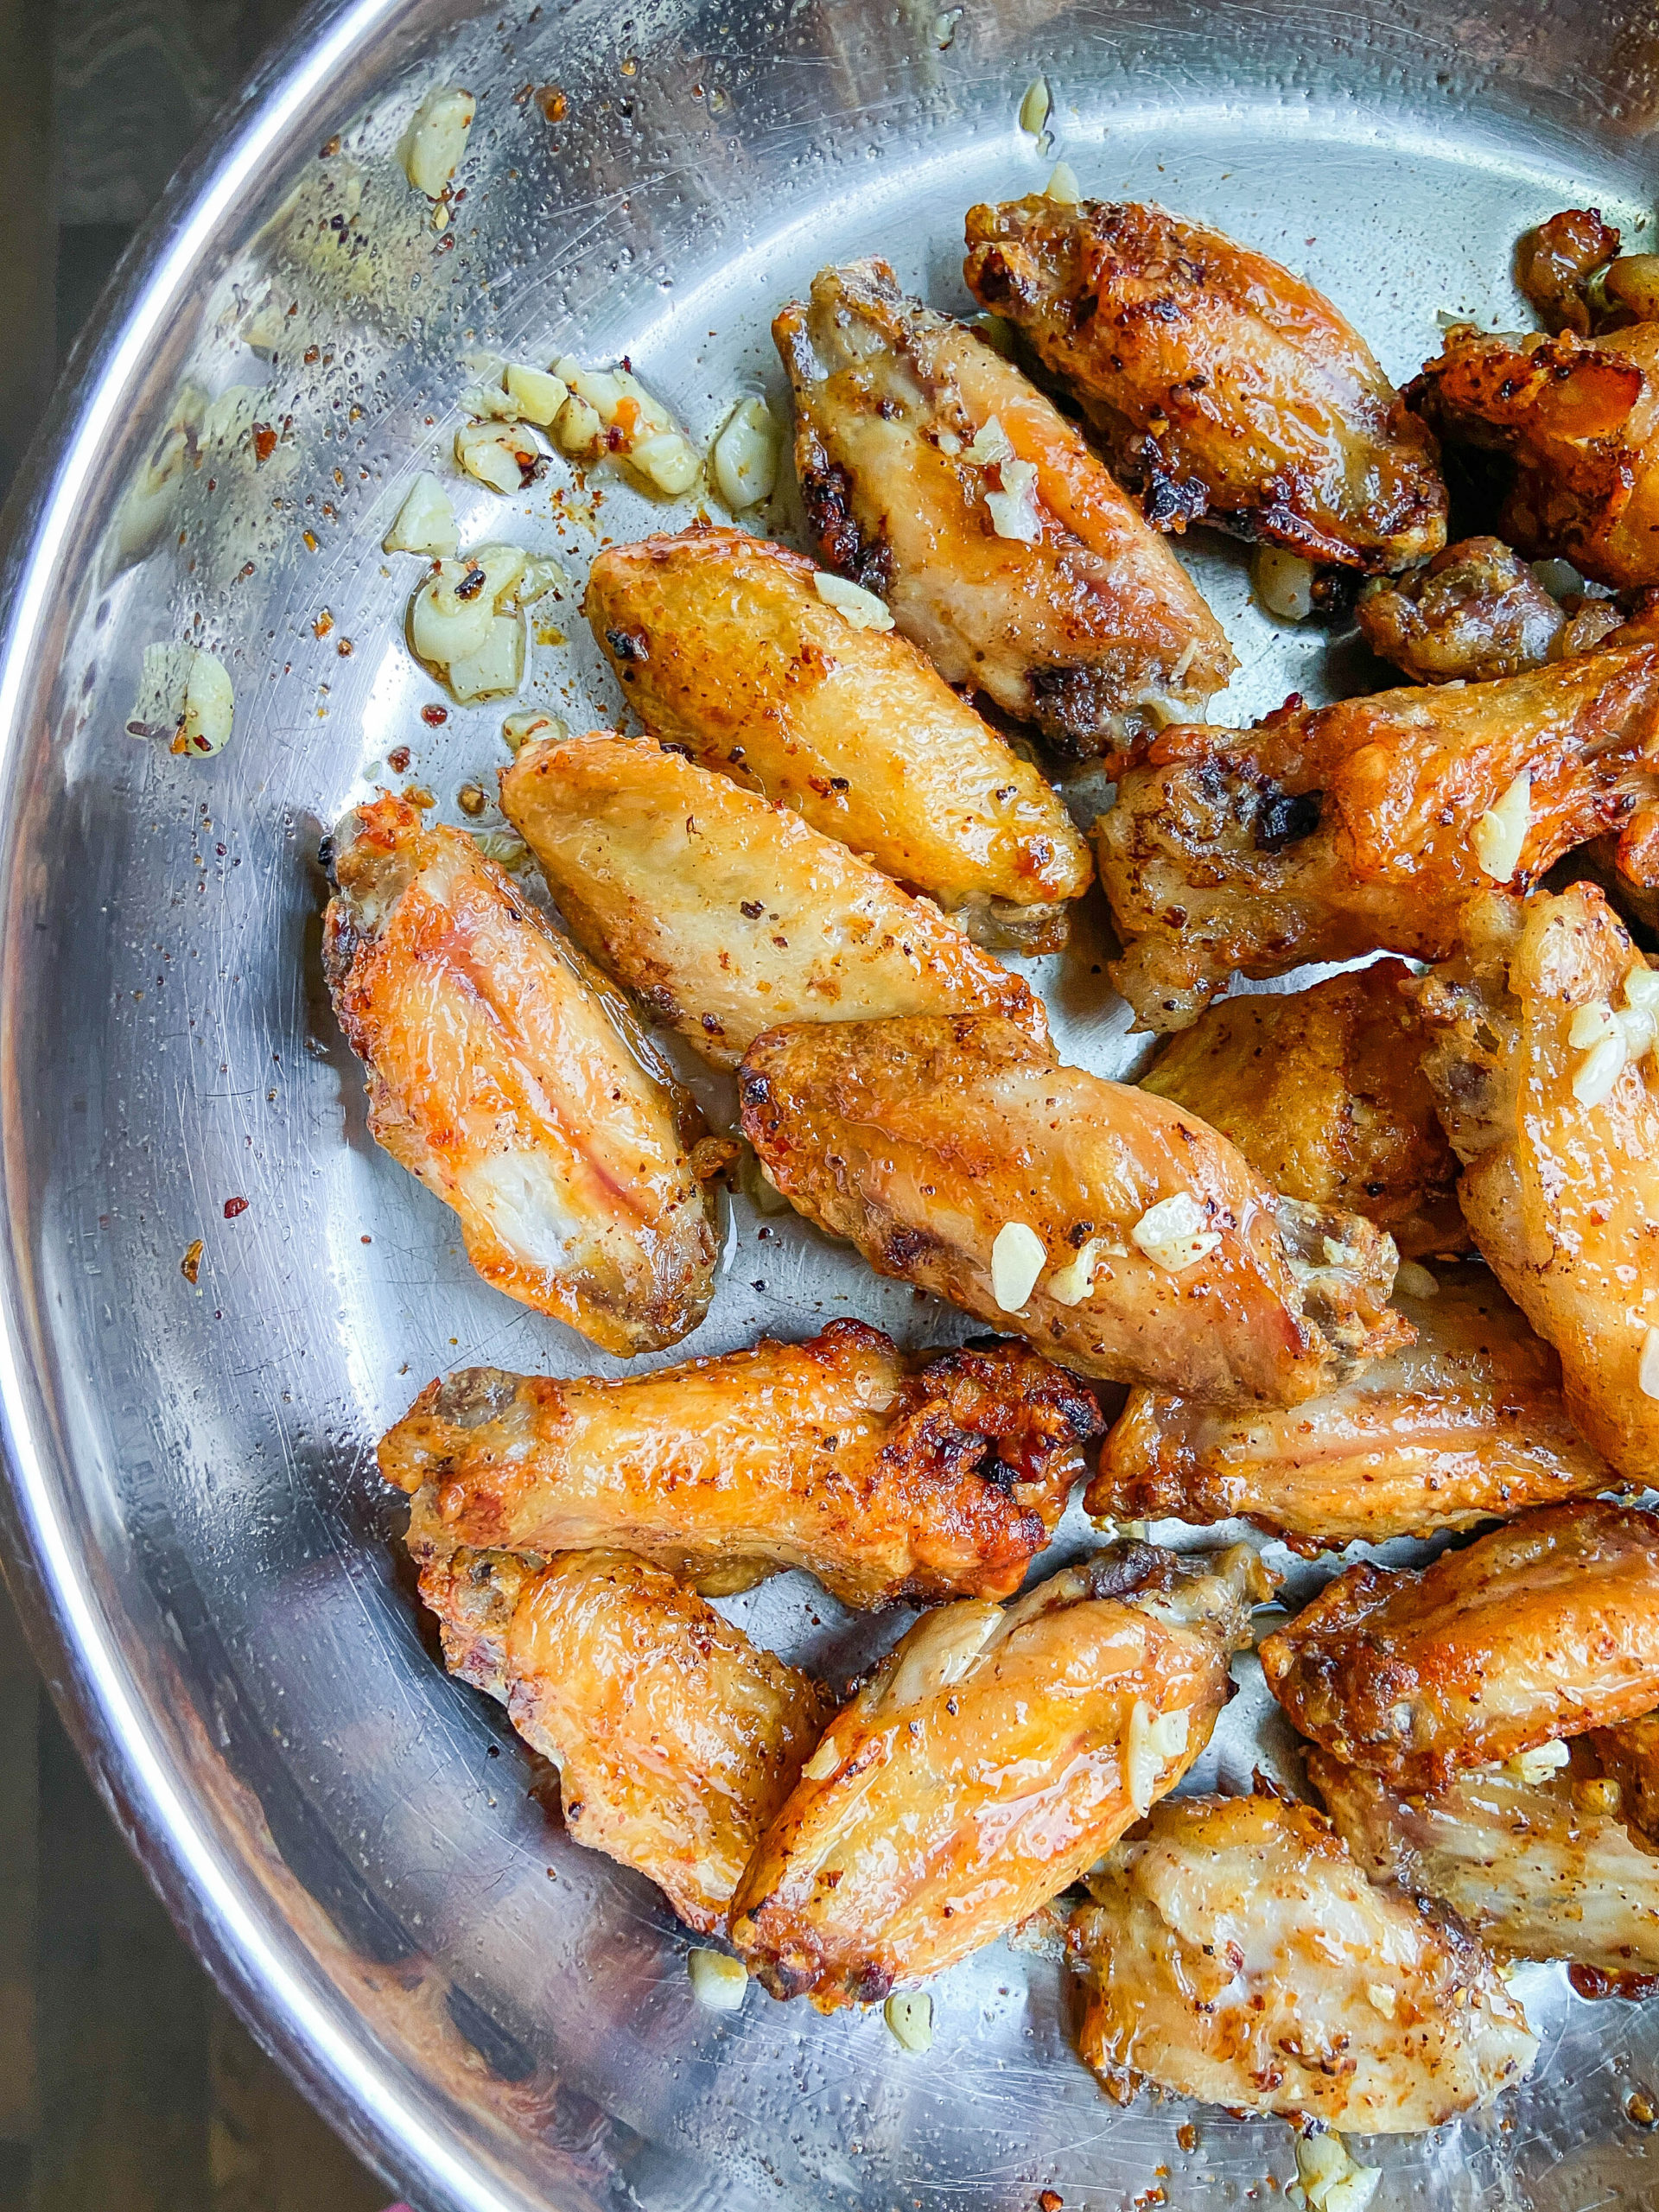 Cooked garlic wings in a frying pan.